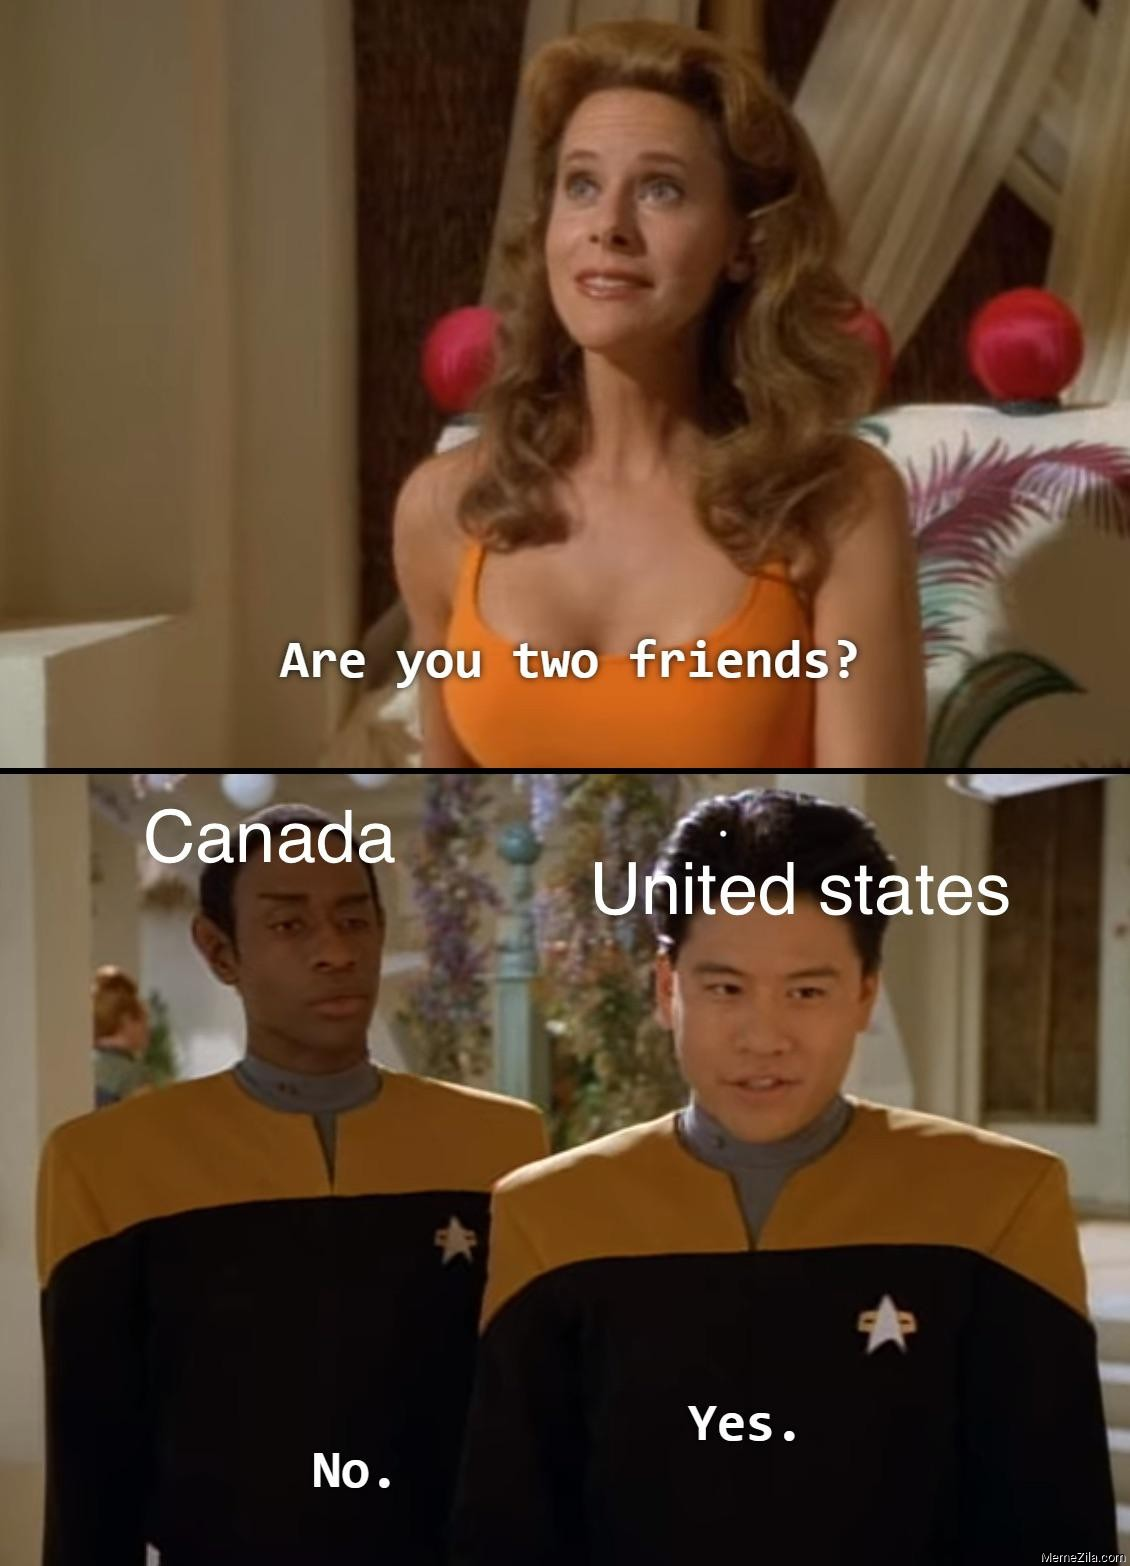 Are you two friends Canada No United States Yes meme